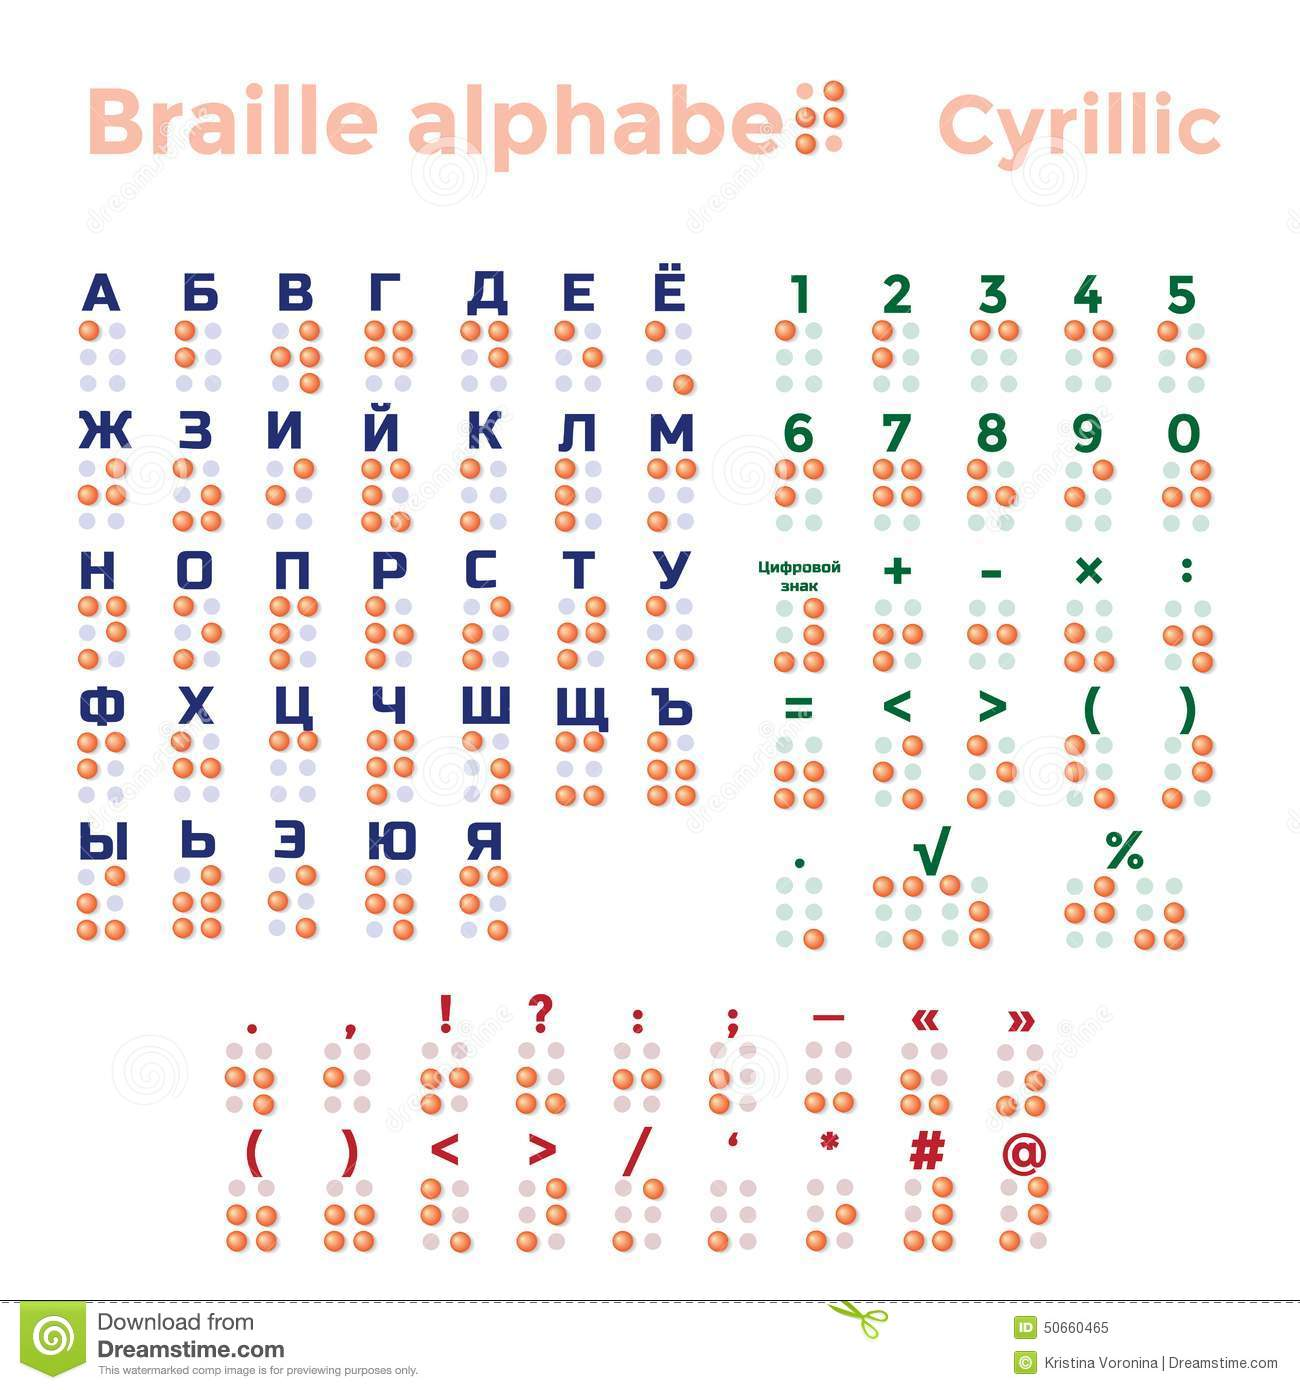 Cyrillic Braille Alphabet, Punctuation And Numbers Stock ...